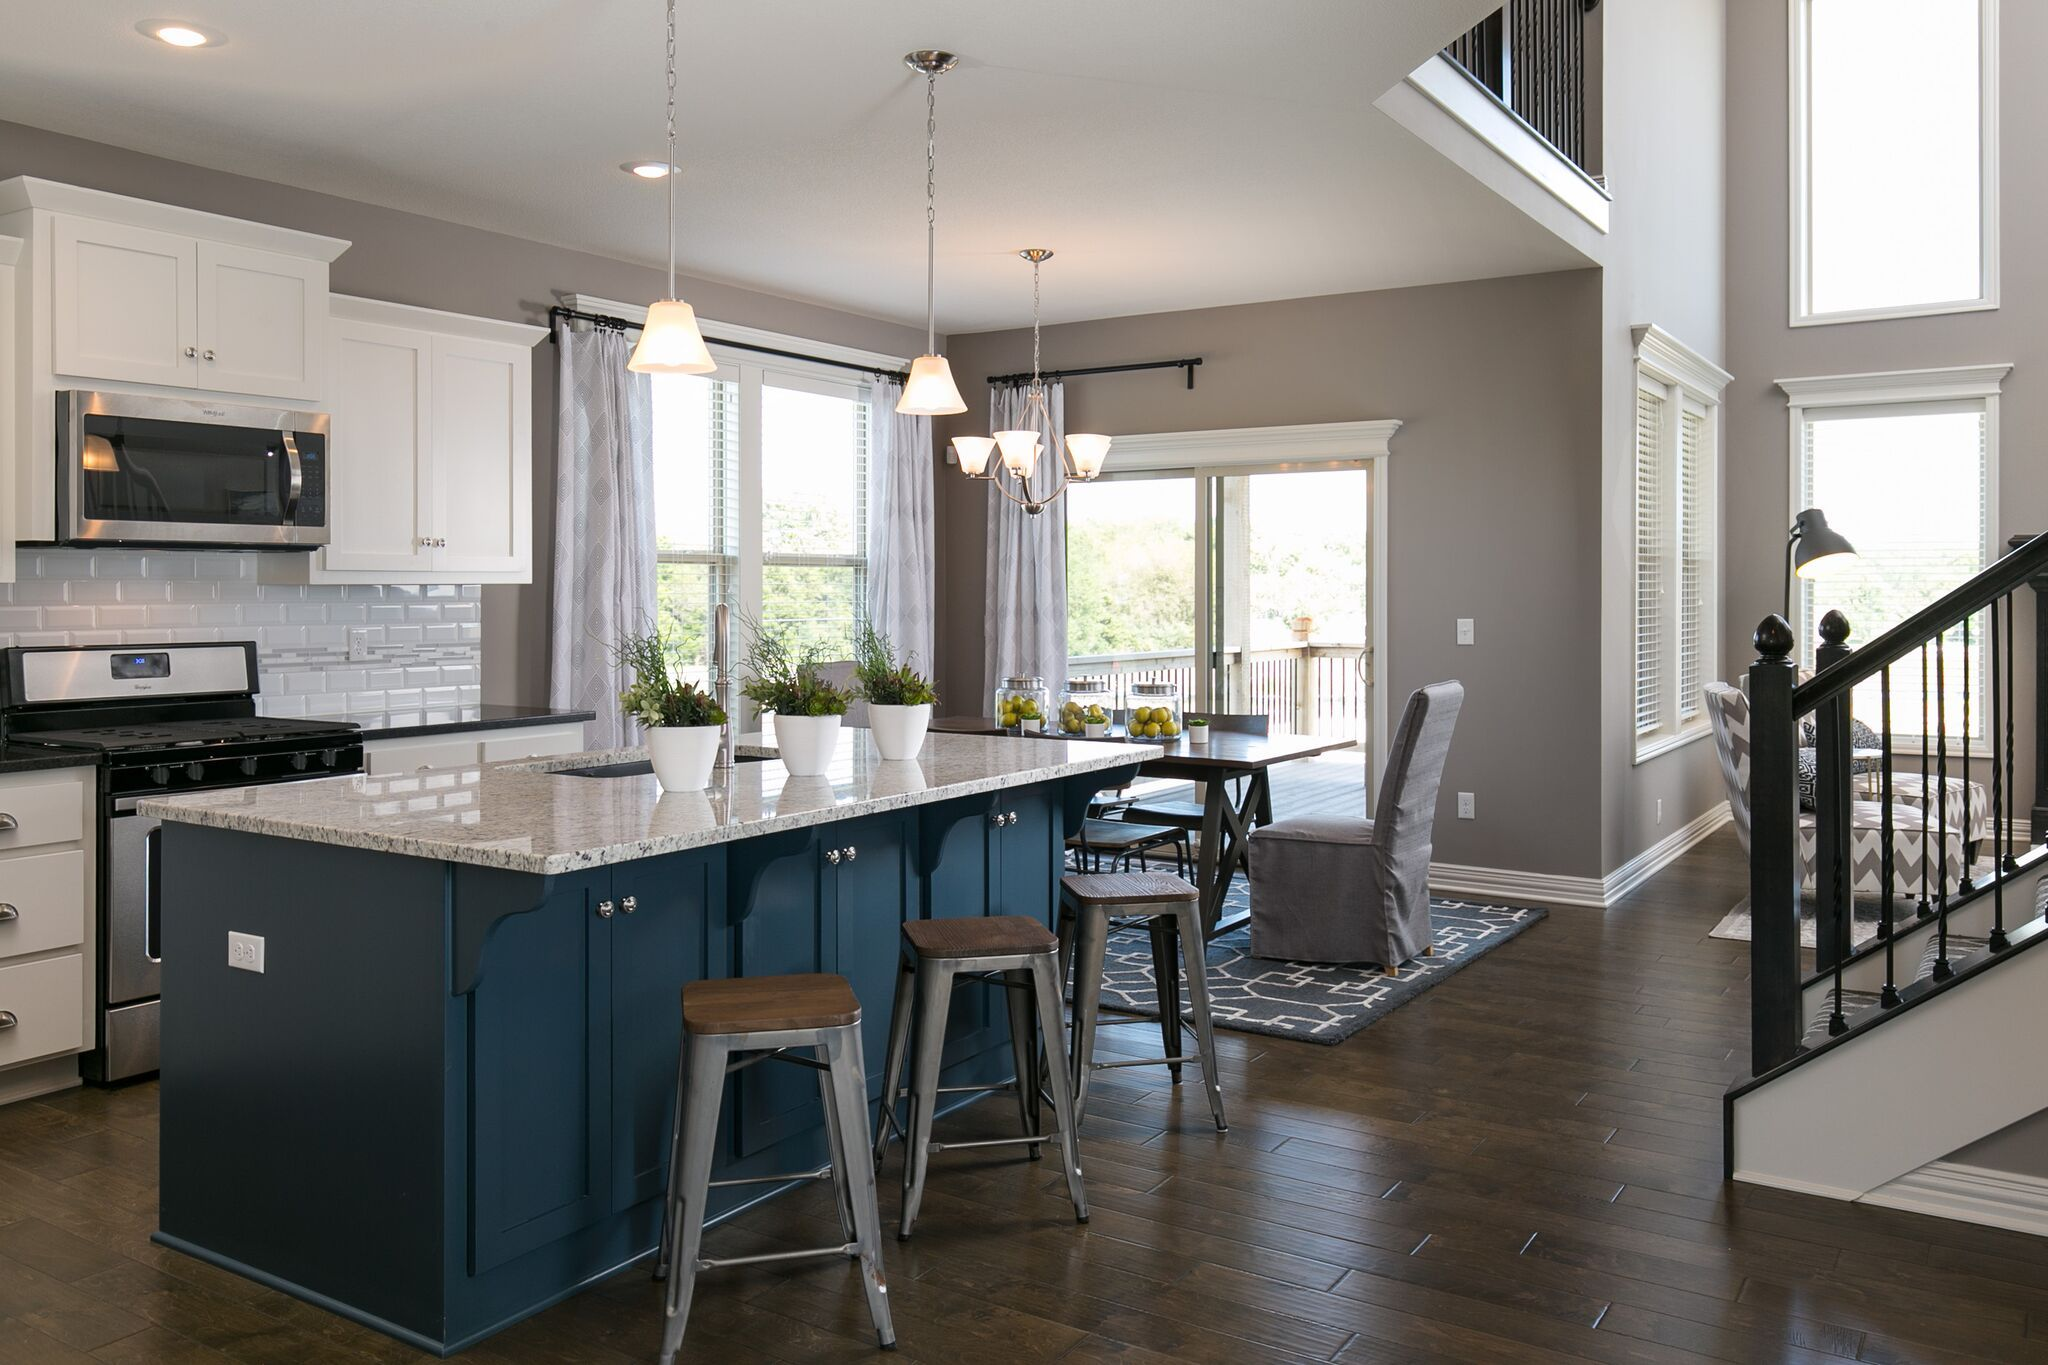 Kitchen featured in the Bayfield - IA By Summit Homes in Des Moines, IA